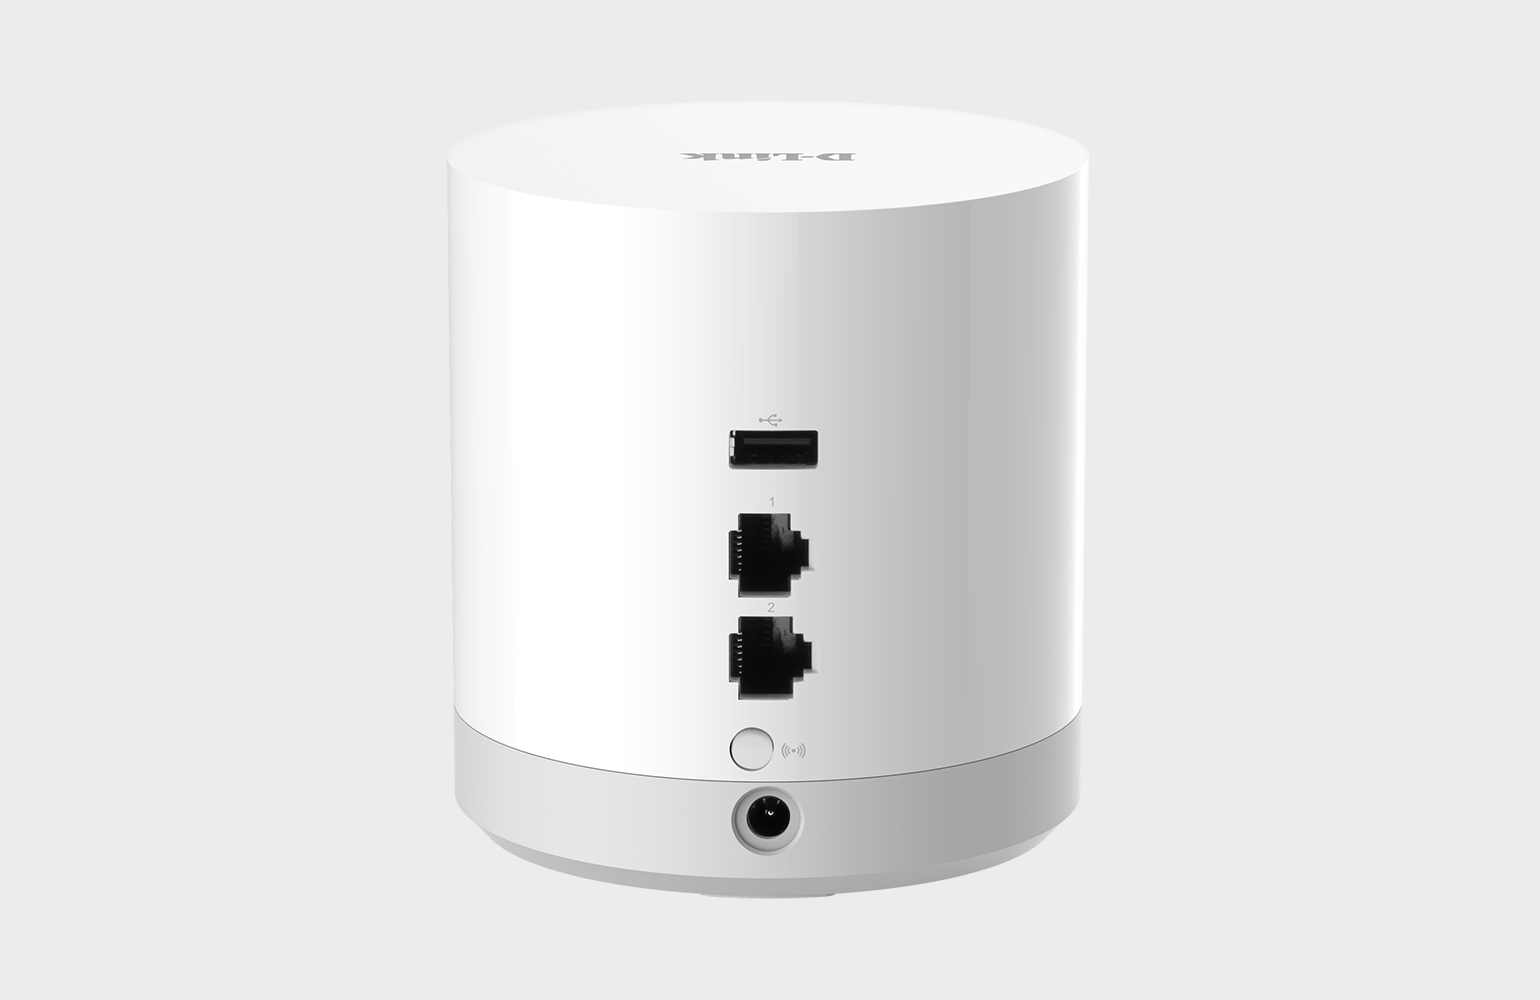 Uk dch z120 how do i setup my dch z120 using my ipad iphone additionally Dch Z120 Home Battery Motion Sensor in addition D Link Dch Z120 Czujnik Ruchu further Casa Sicura In Modo Semplice E Veloce 49052 as well Home Pvr 45. on dch z120